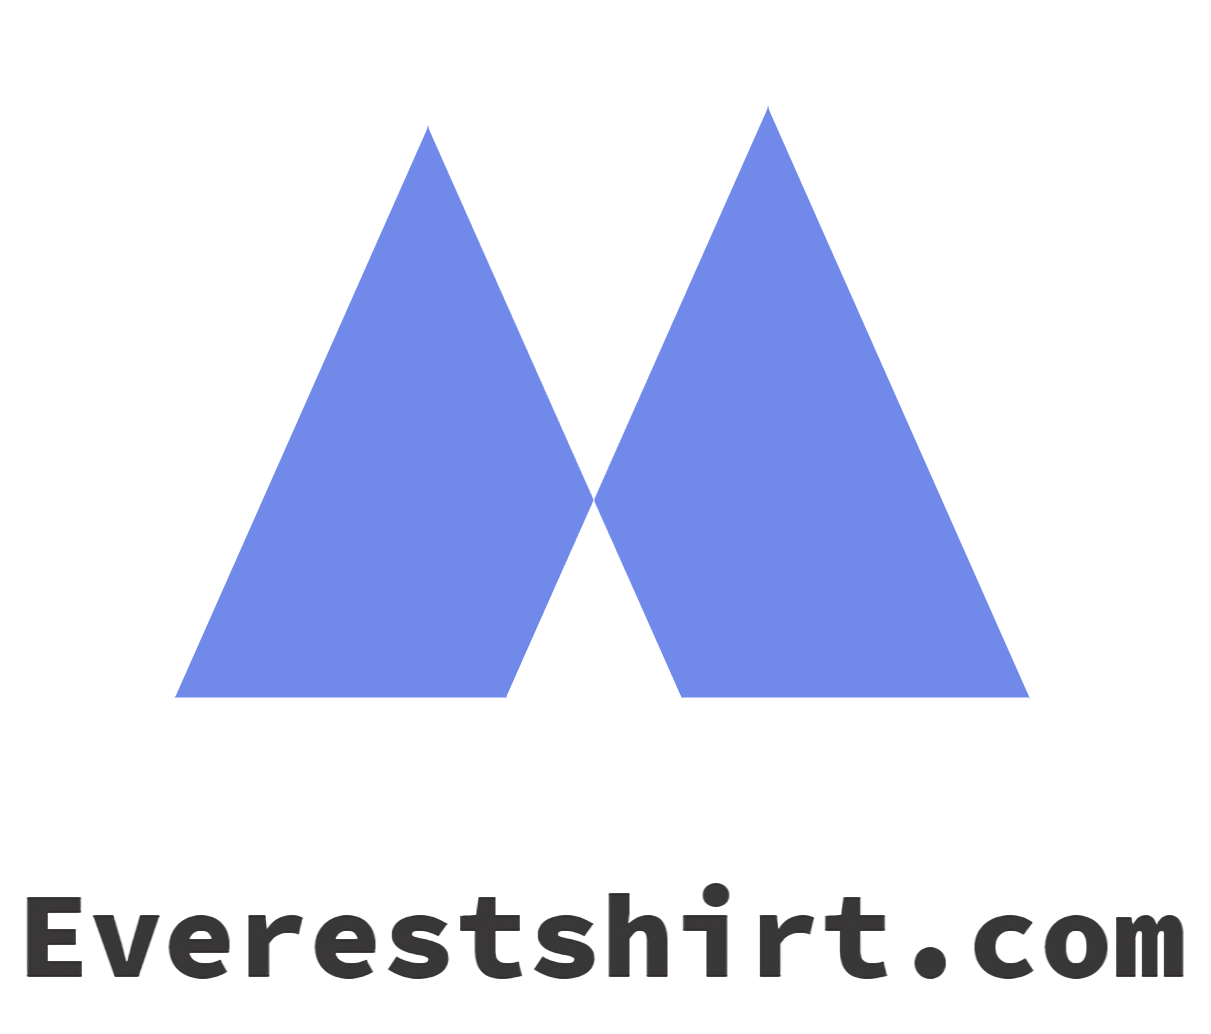 everestshirt.com Shirts | Shop Funny T Shirts | Make Your Own Custom T Shirts